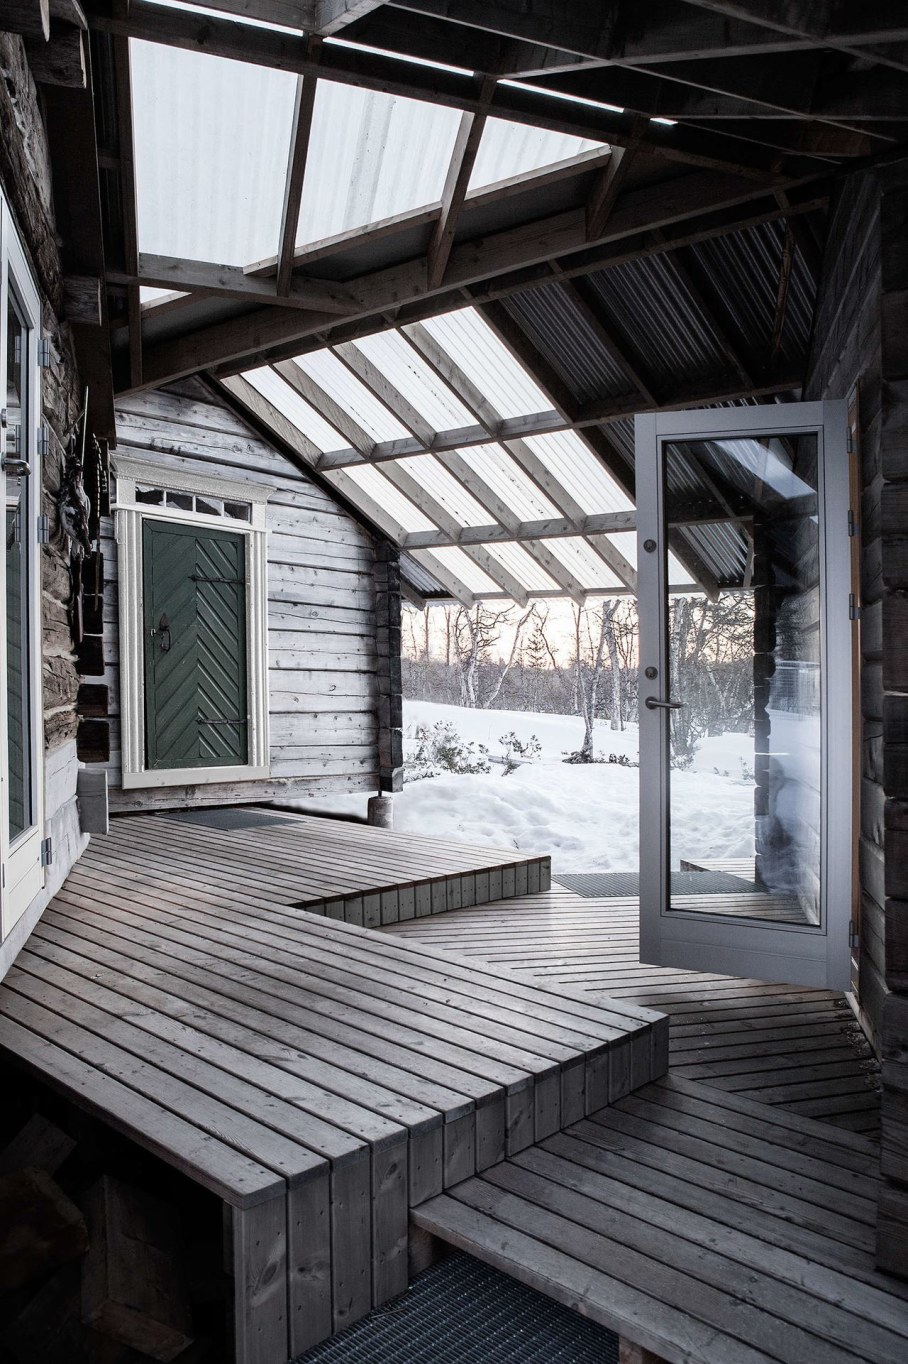 The wooden house in Norway - Cabin at Femunden 13